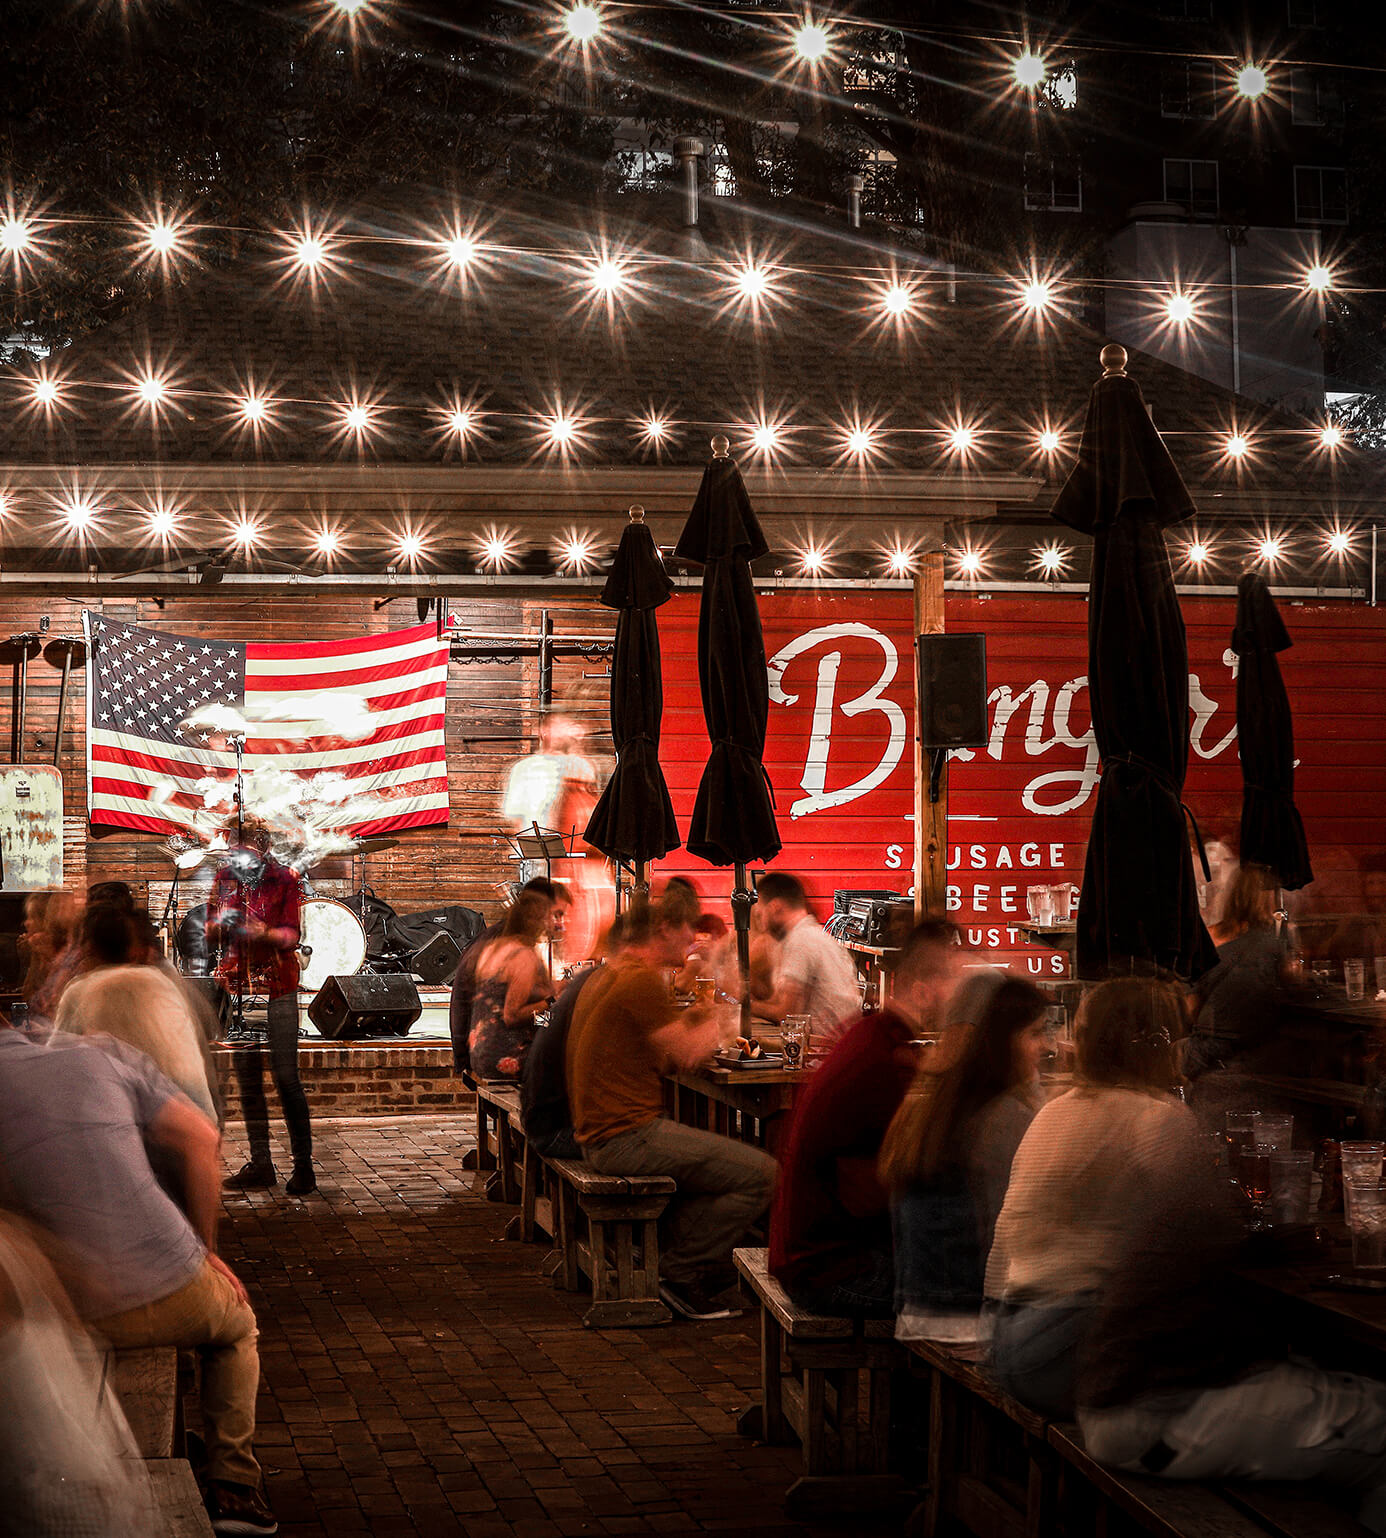 Night life image of Banger's in Austin Texas with people eating at picnic tables with hanging lights